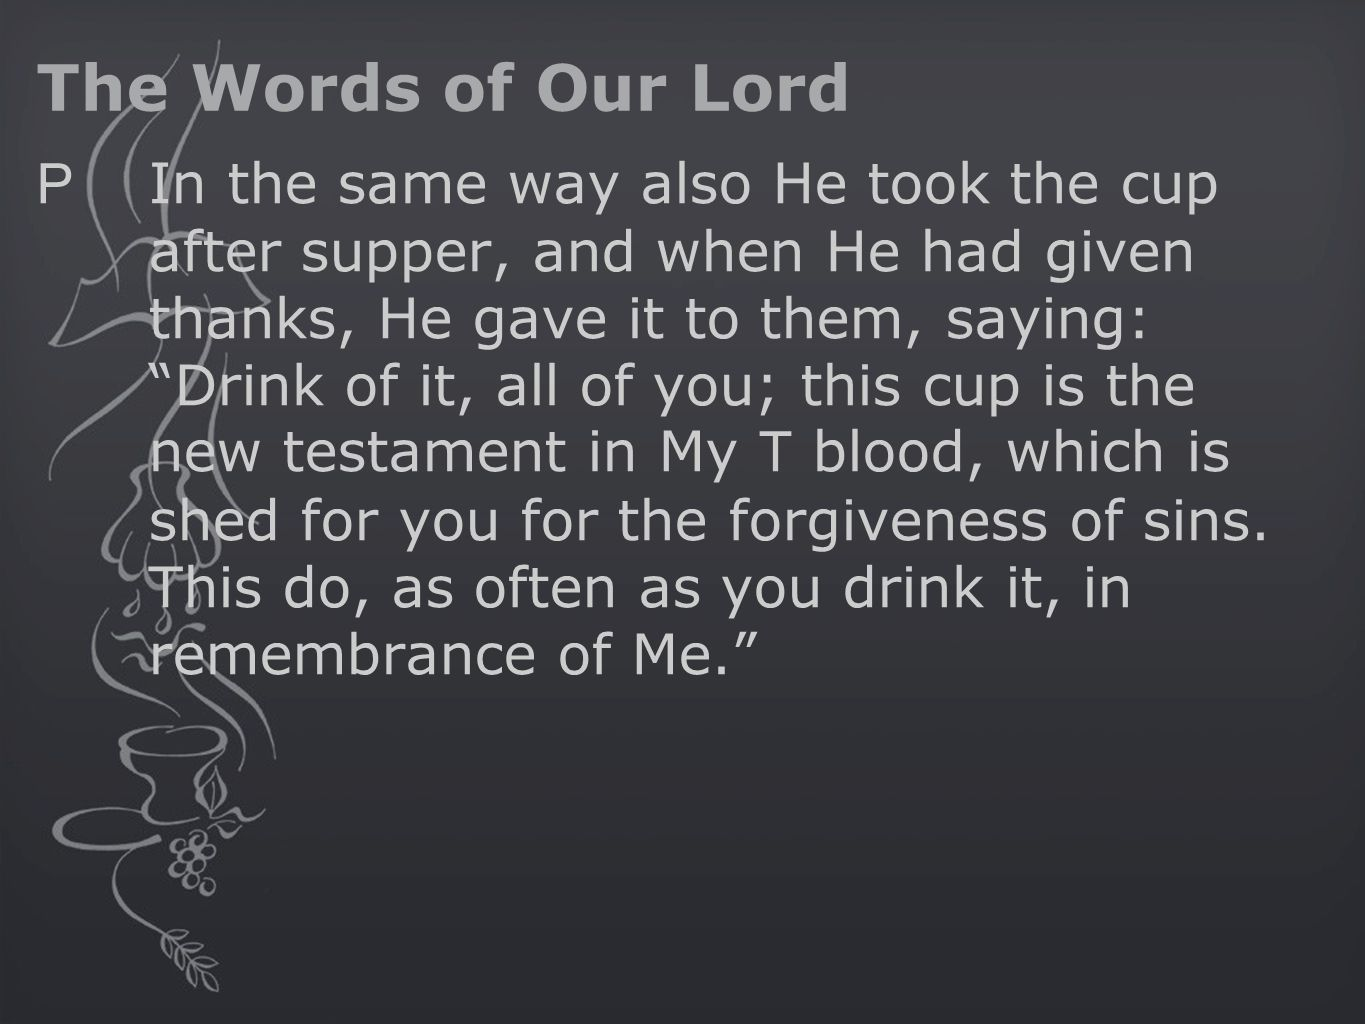 The Words of Our Lord P In the same way also He took the cup after supper, and when He had given thanks, He gave it to them, saying: Drink of it, all of you; this cup is the new testament in My T blood, which is shed for you for the forgiveness of sins.